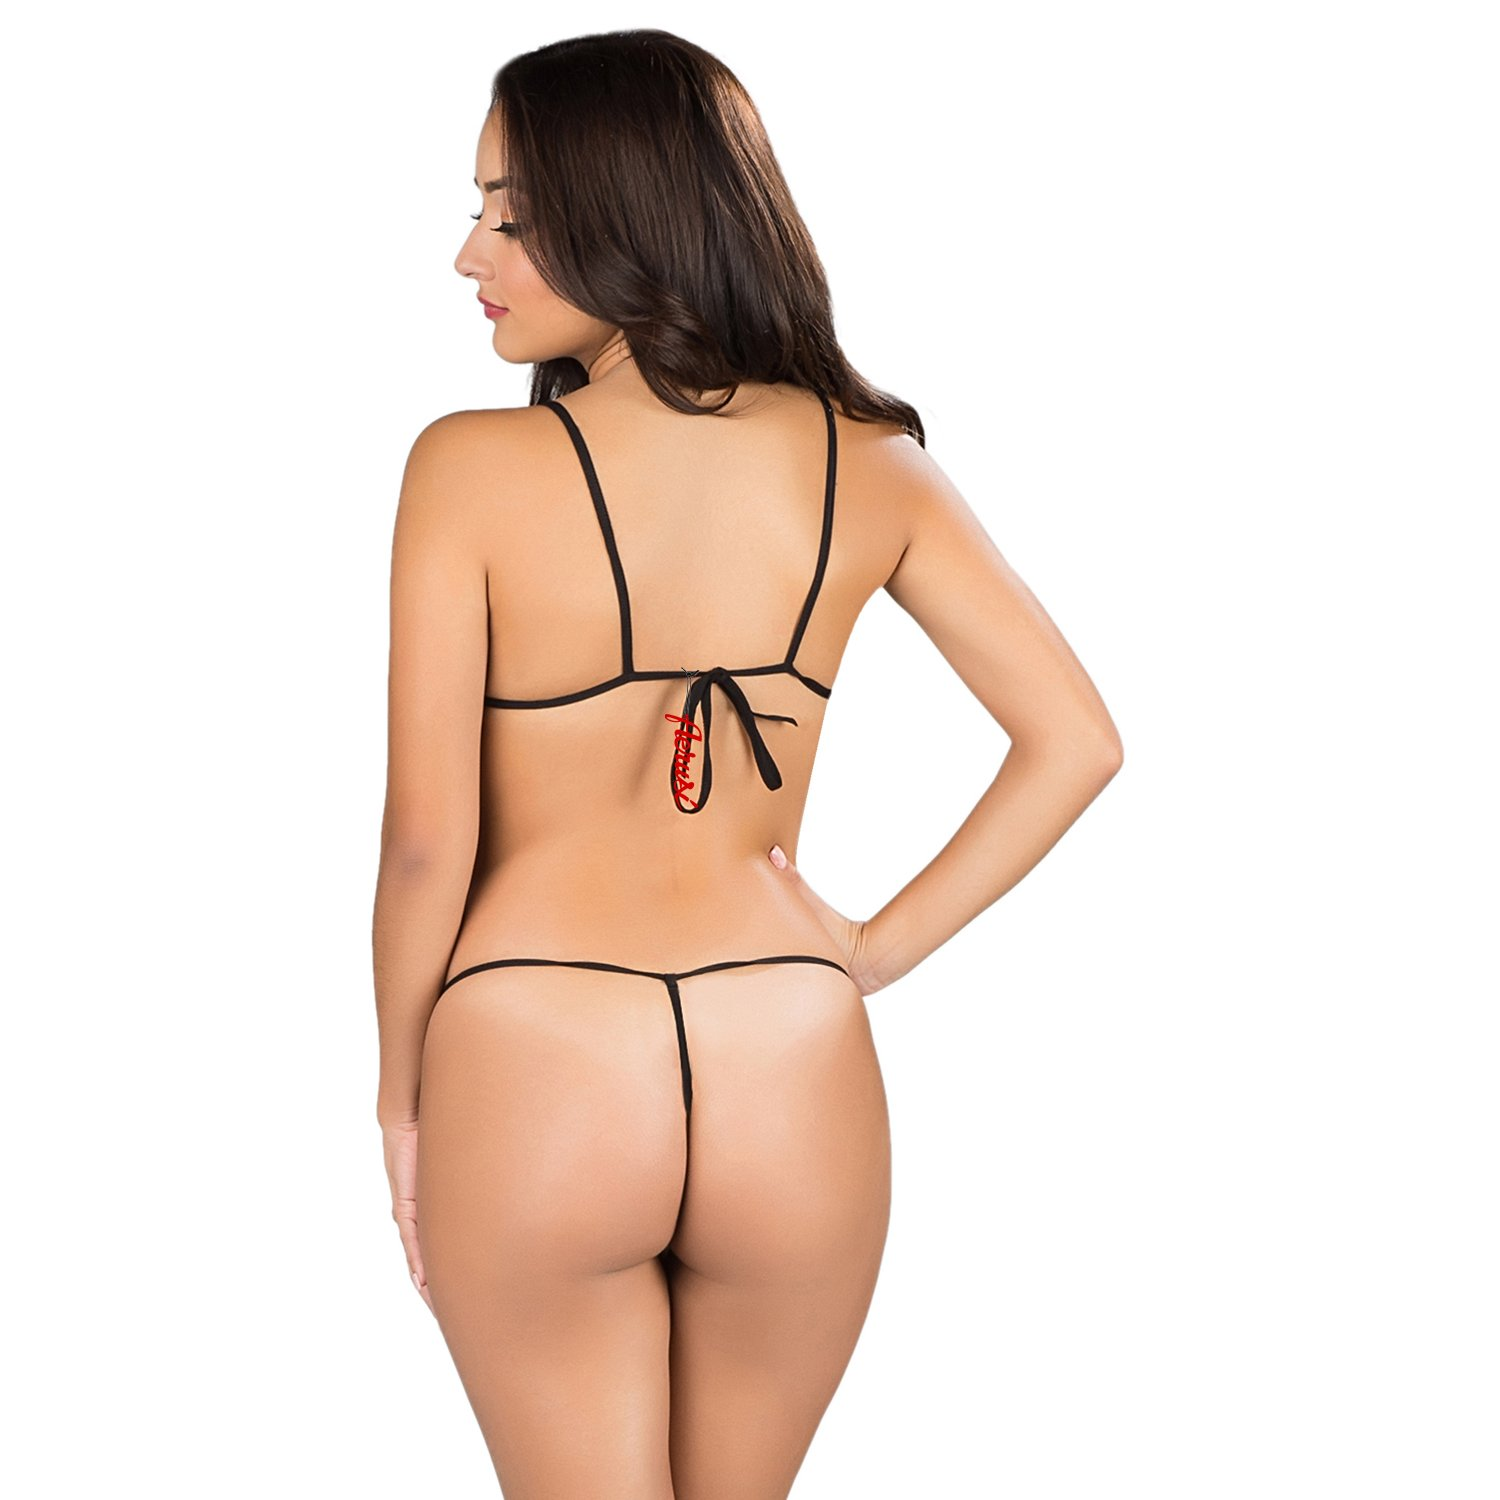 34cc4240725 Amazon.com  Black Fantasy Lingerie Role Play Bra Top + g-string Thong  Exotic Backless Sleepwear Naughty Constume